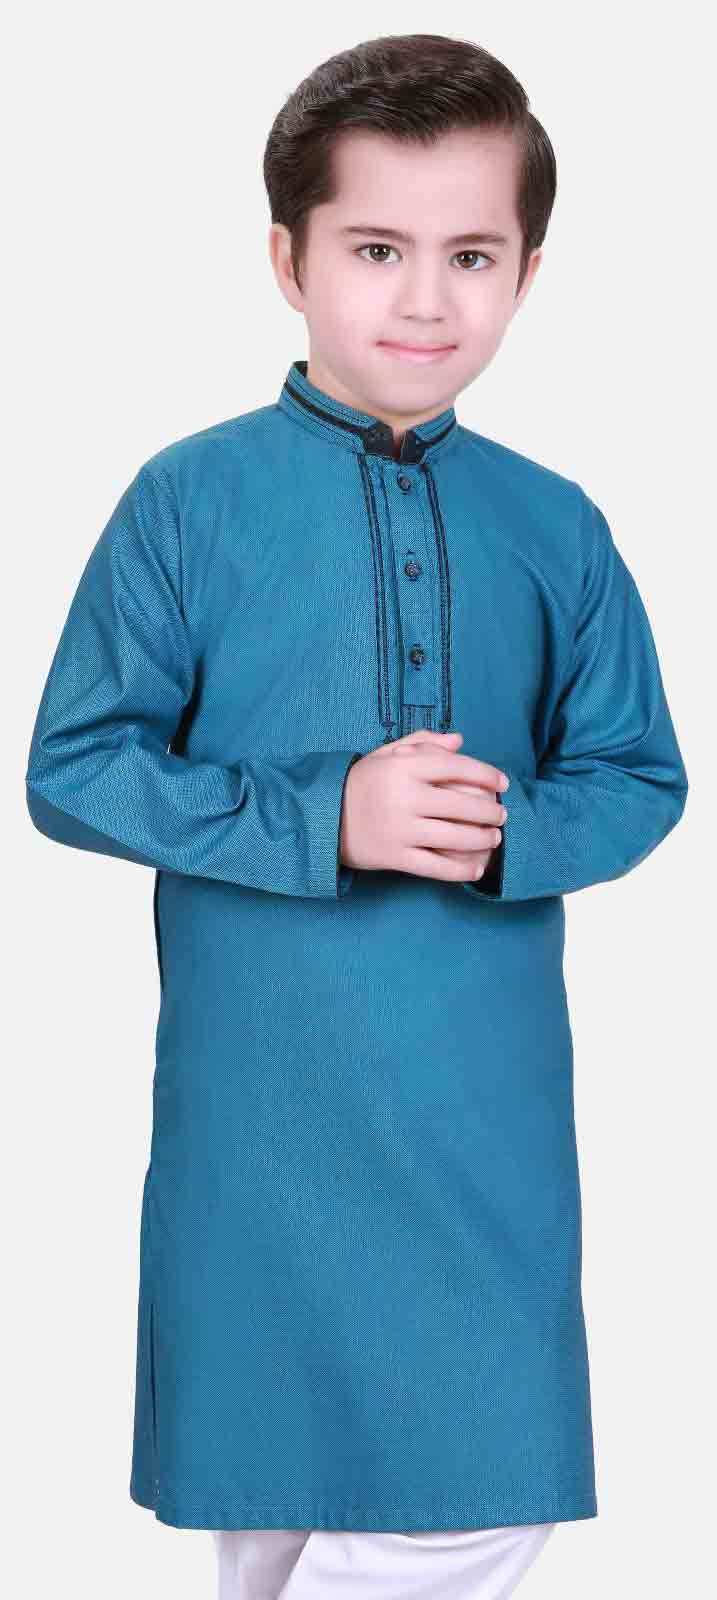 Blue kurta shalwar kameez latest eid dresses for little boys in Pakistan 2017